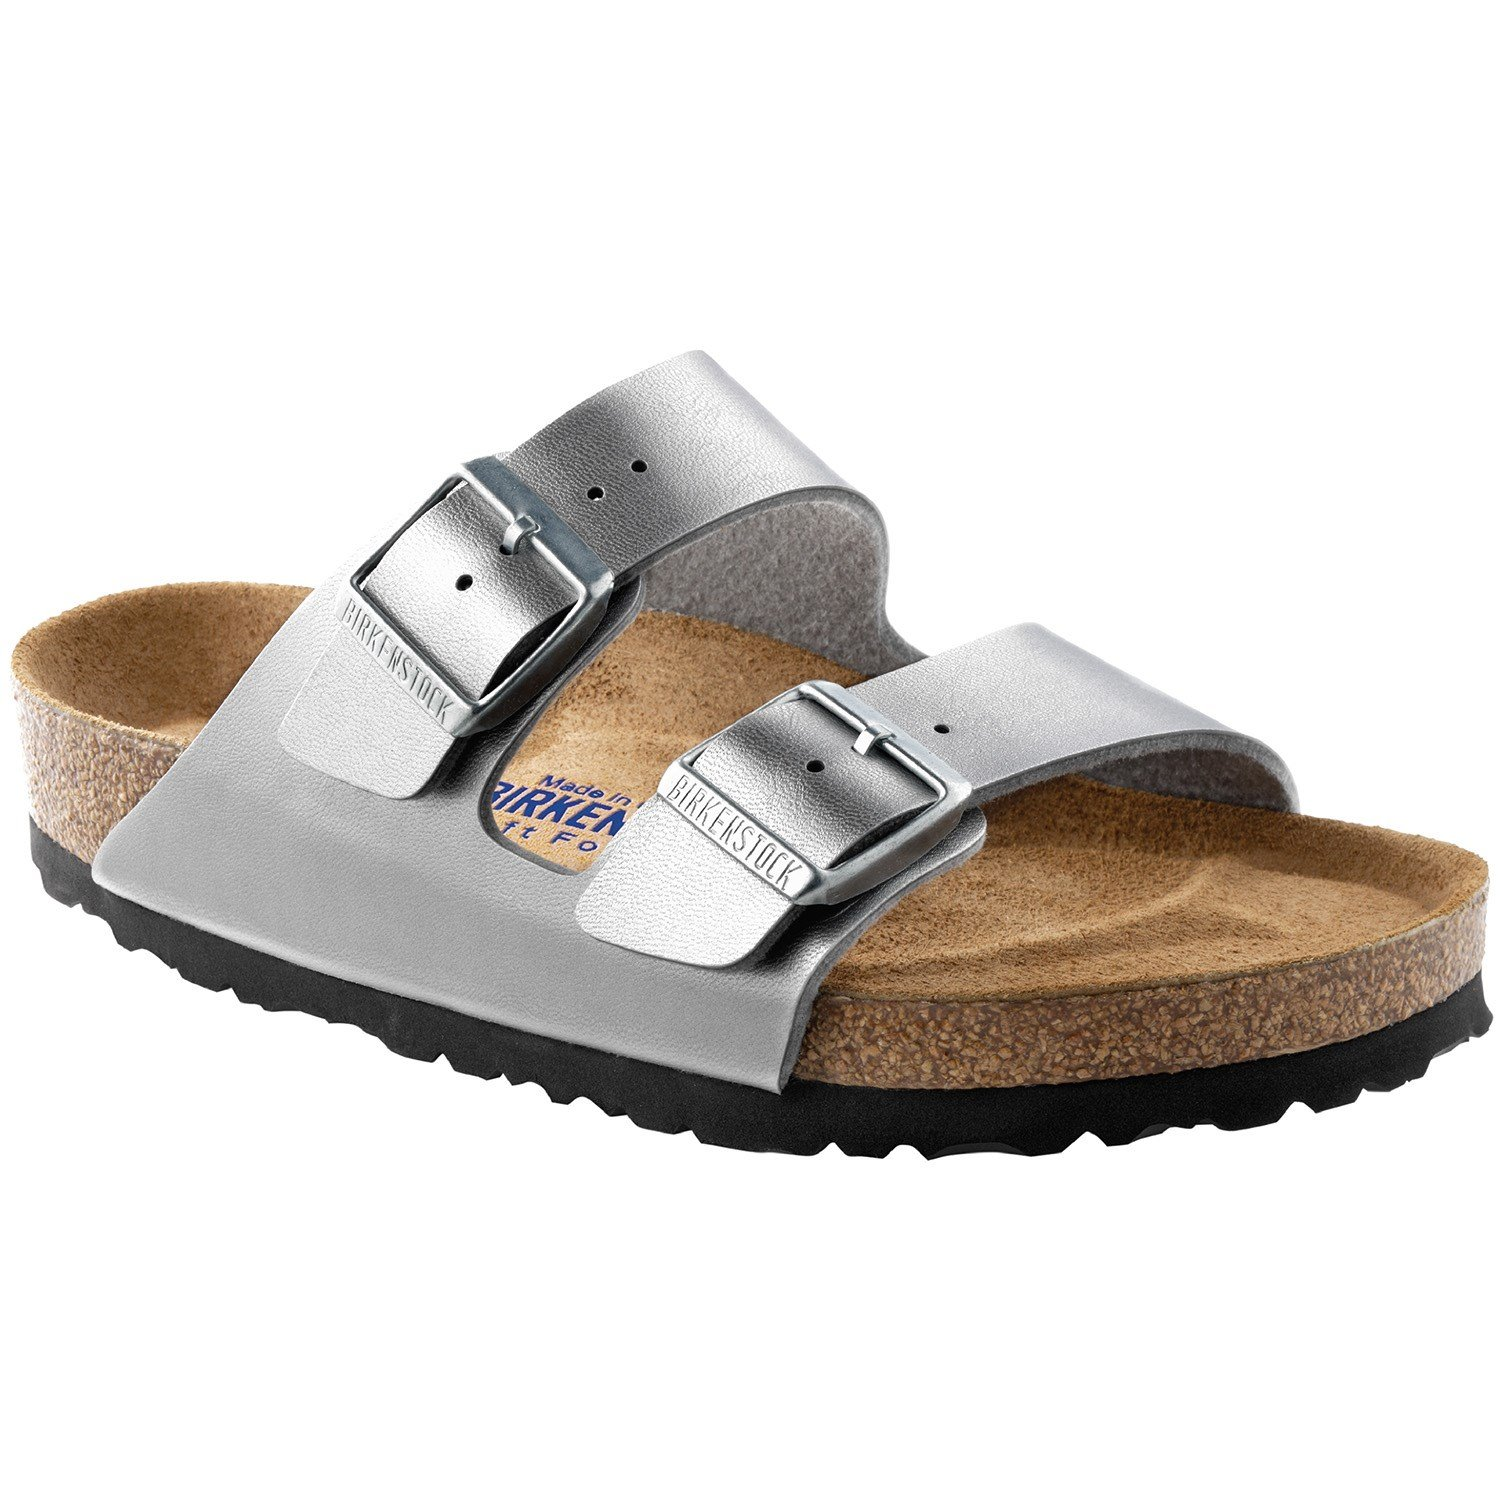 475c07a0d6c48 Birkenstock Arizona Birko-Flor™ Soft Footbed Sandals - Women s